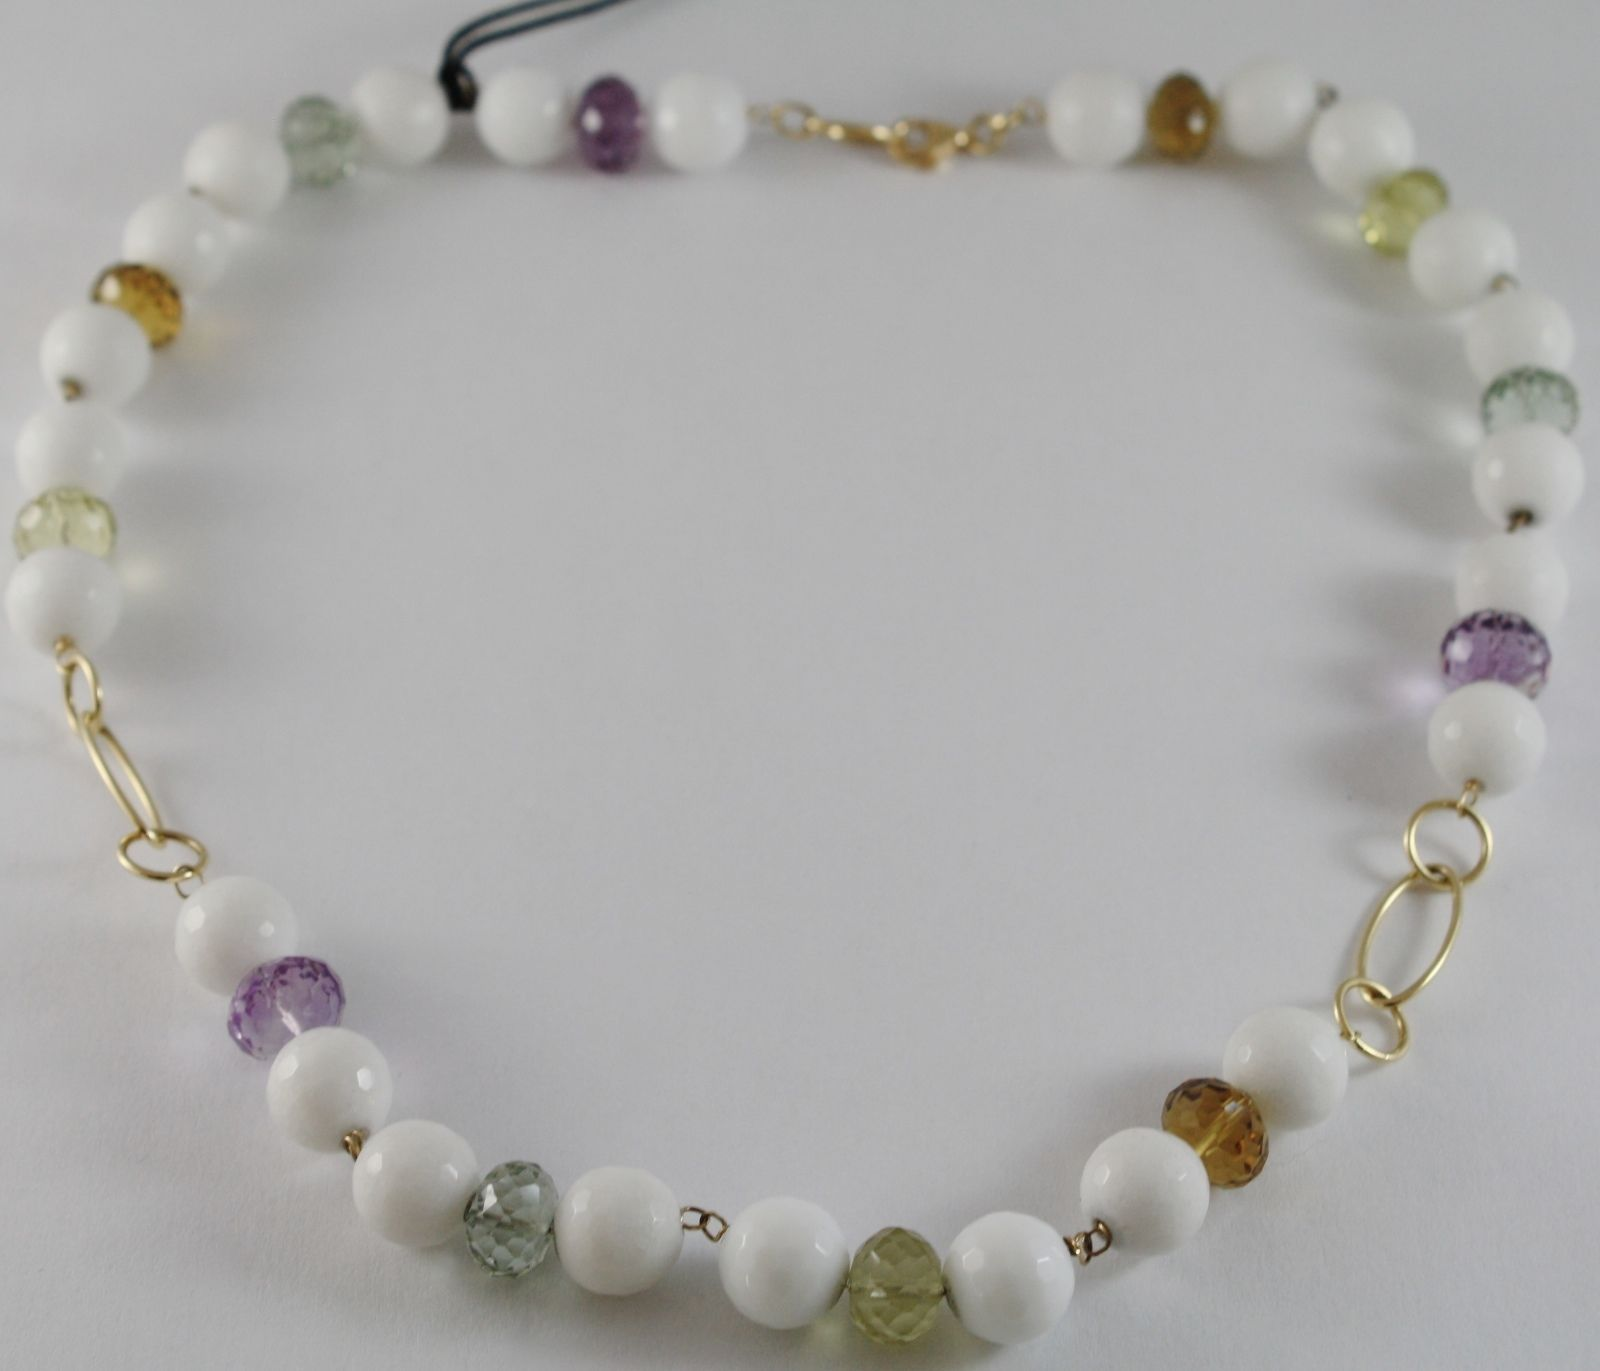 18K YELLOW GOLD NECKLACE WHITE AGATE AMETHYST PRASIOLITE LEMON QUARTZ CITRINE